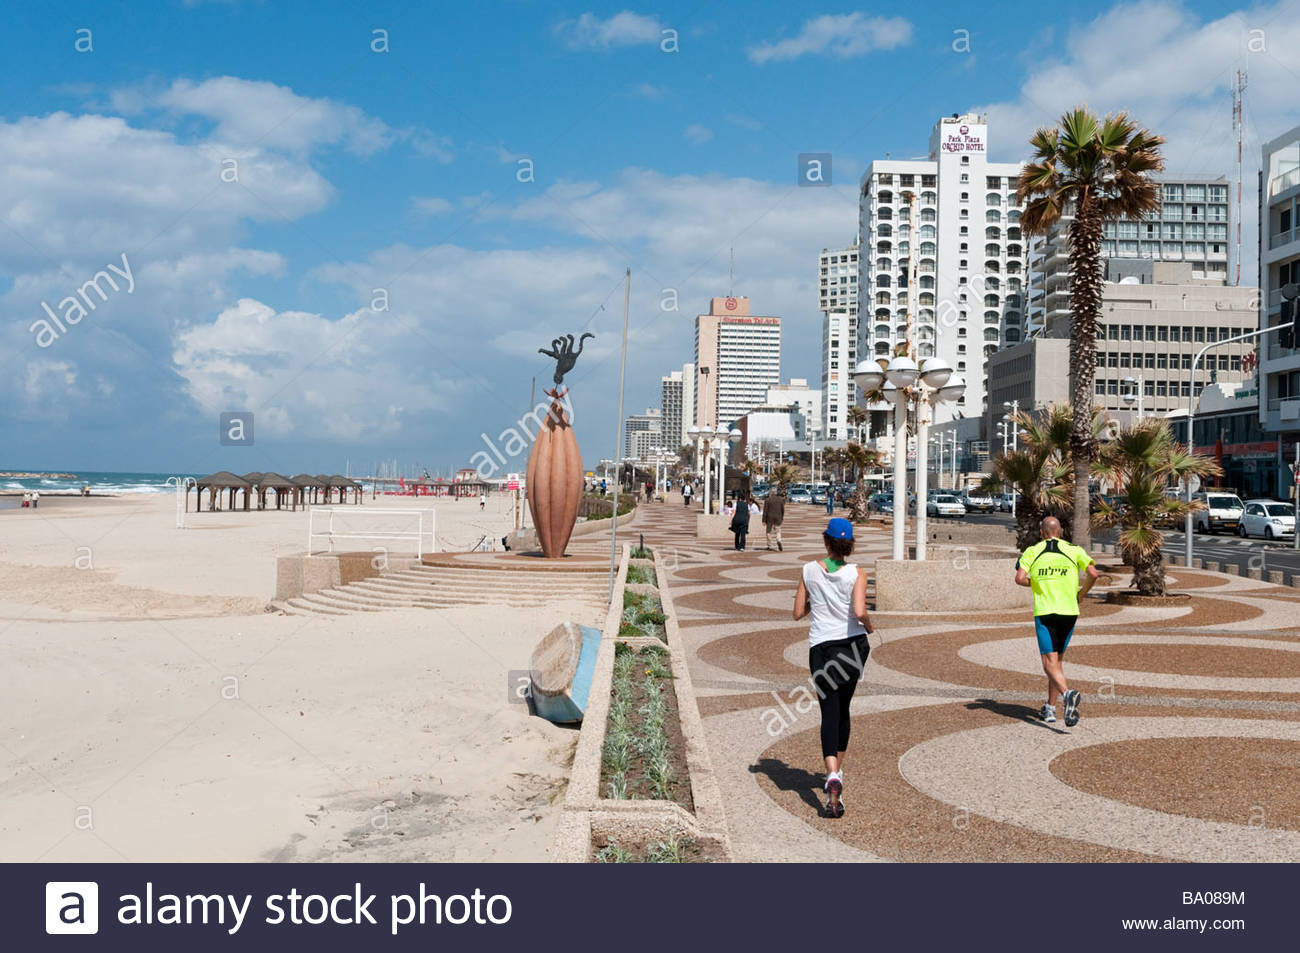 The waterfront promenade, Tel Aviv, Israel - Stock Image